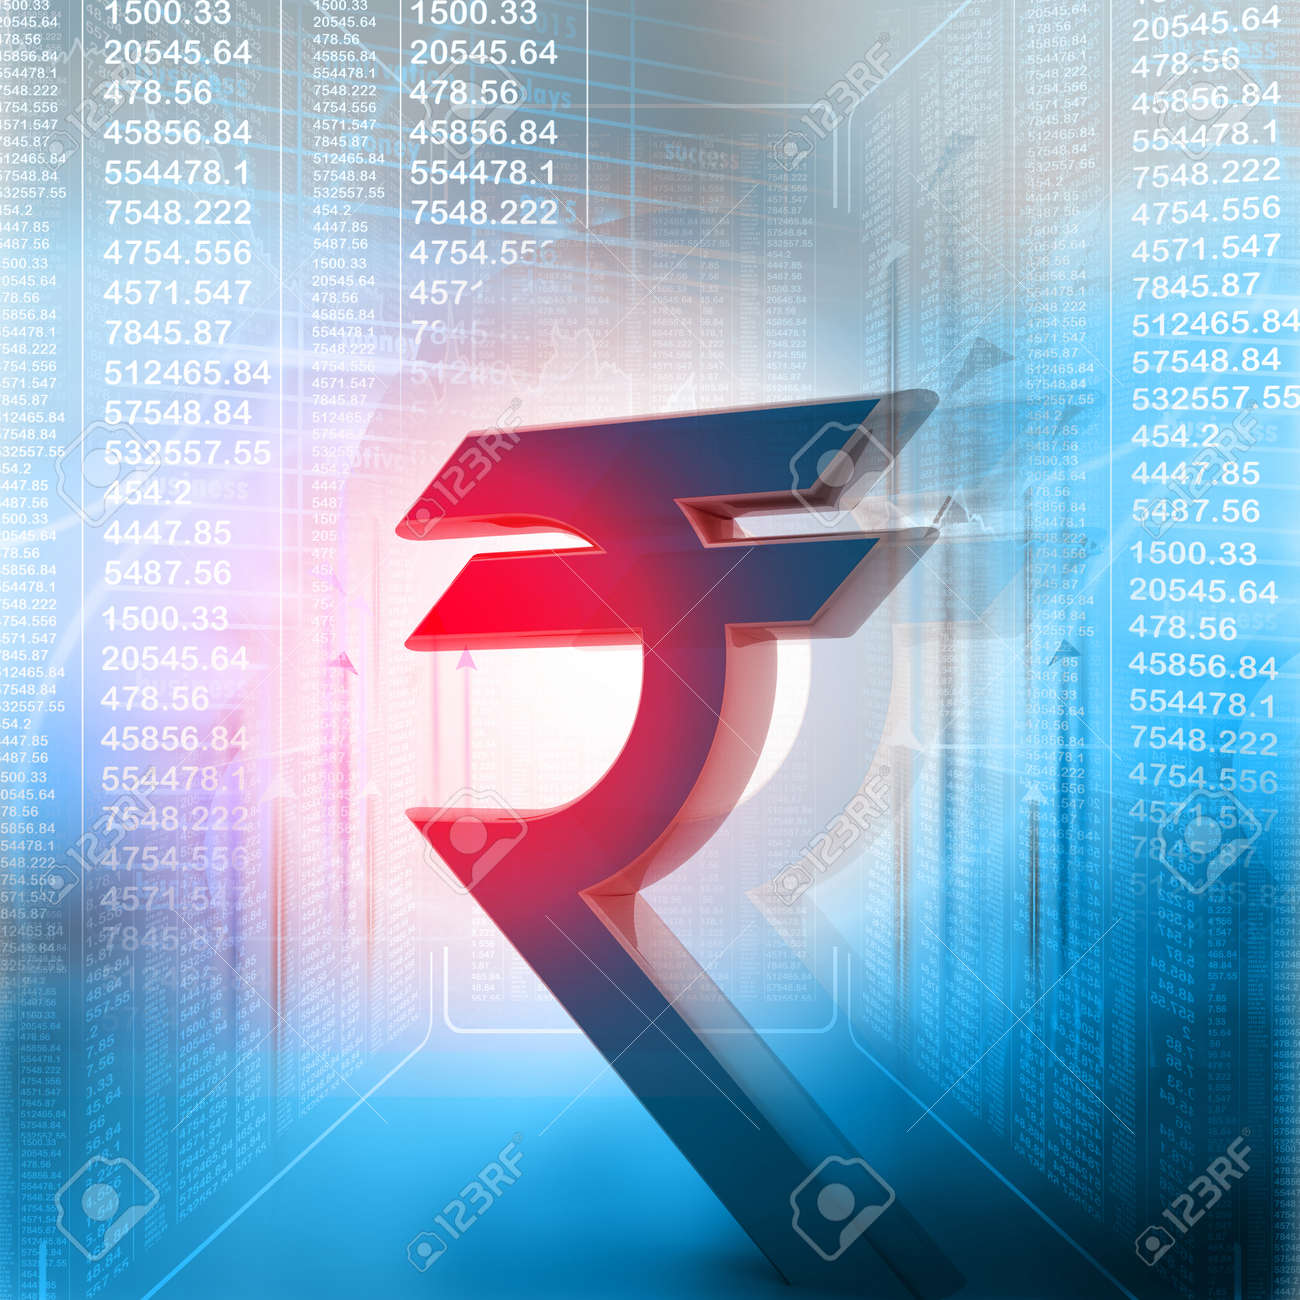 Indian rupee symbol in business background stock photo picture indian rupee symbol in business background stock photo 30700439 biocorpaavc Choice Image